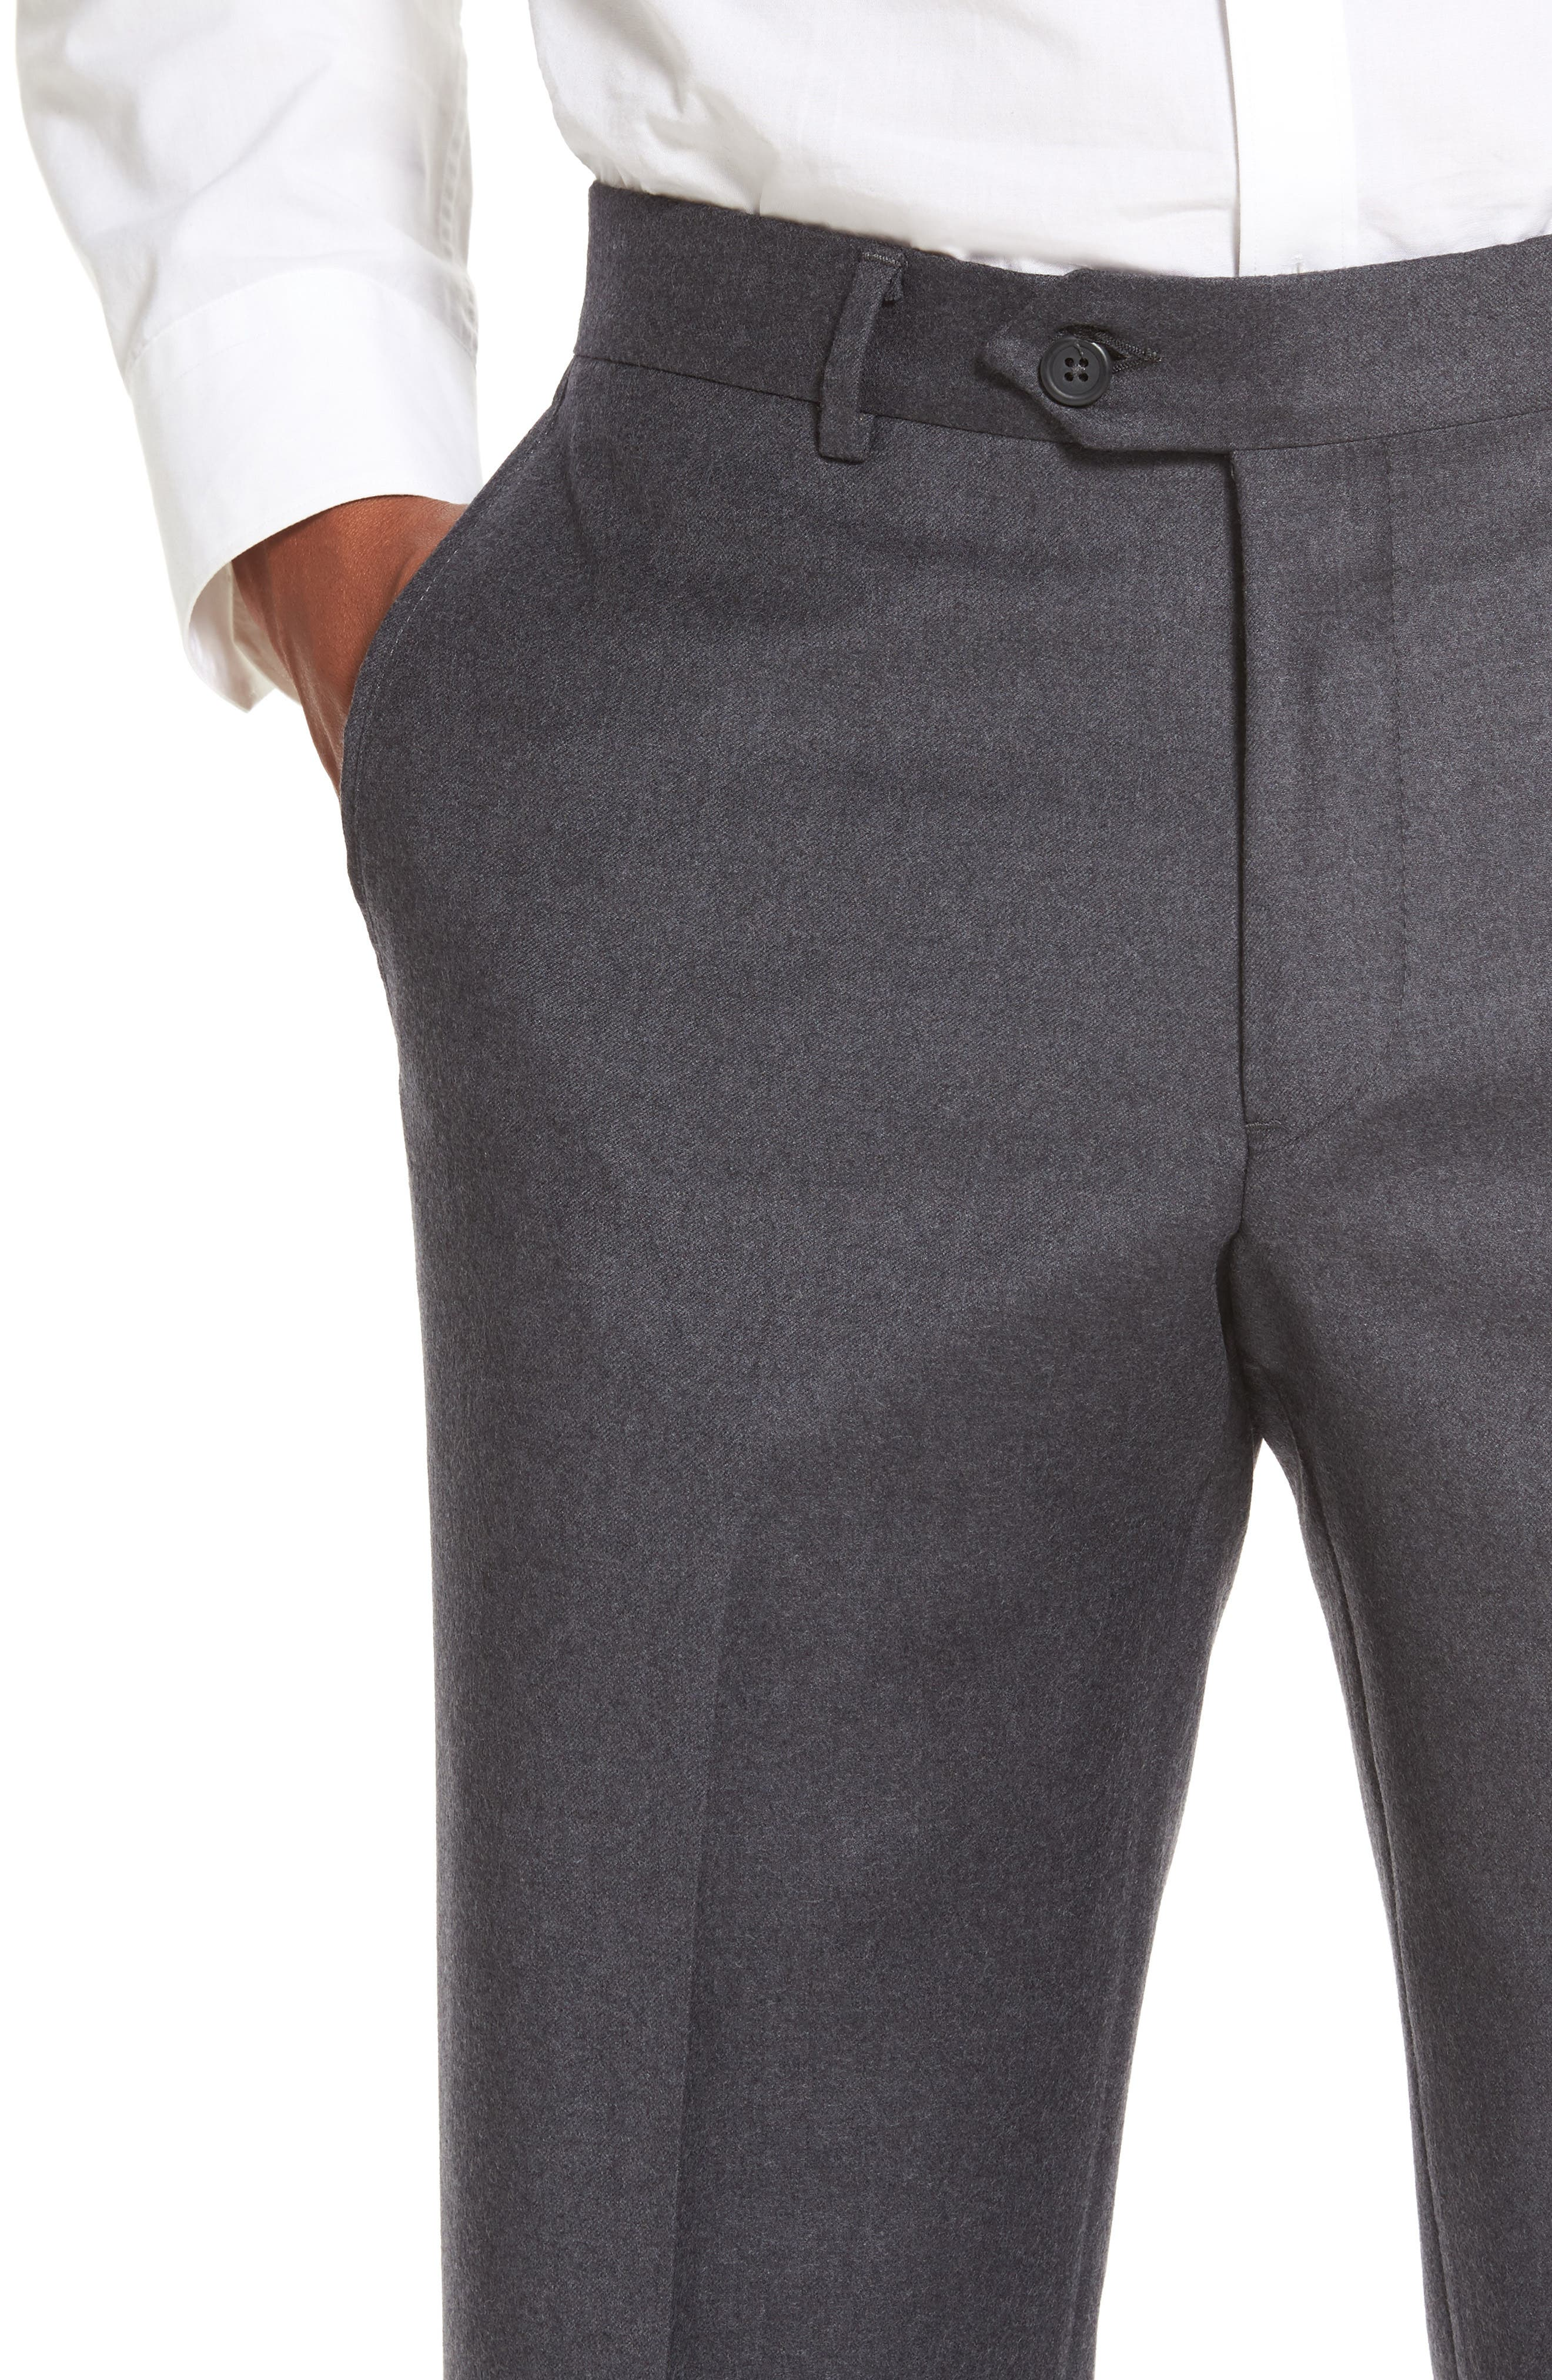 Flat Front Solid Wool Trousers,                             Alternate thumbnail 5, color,                             020